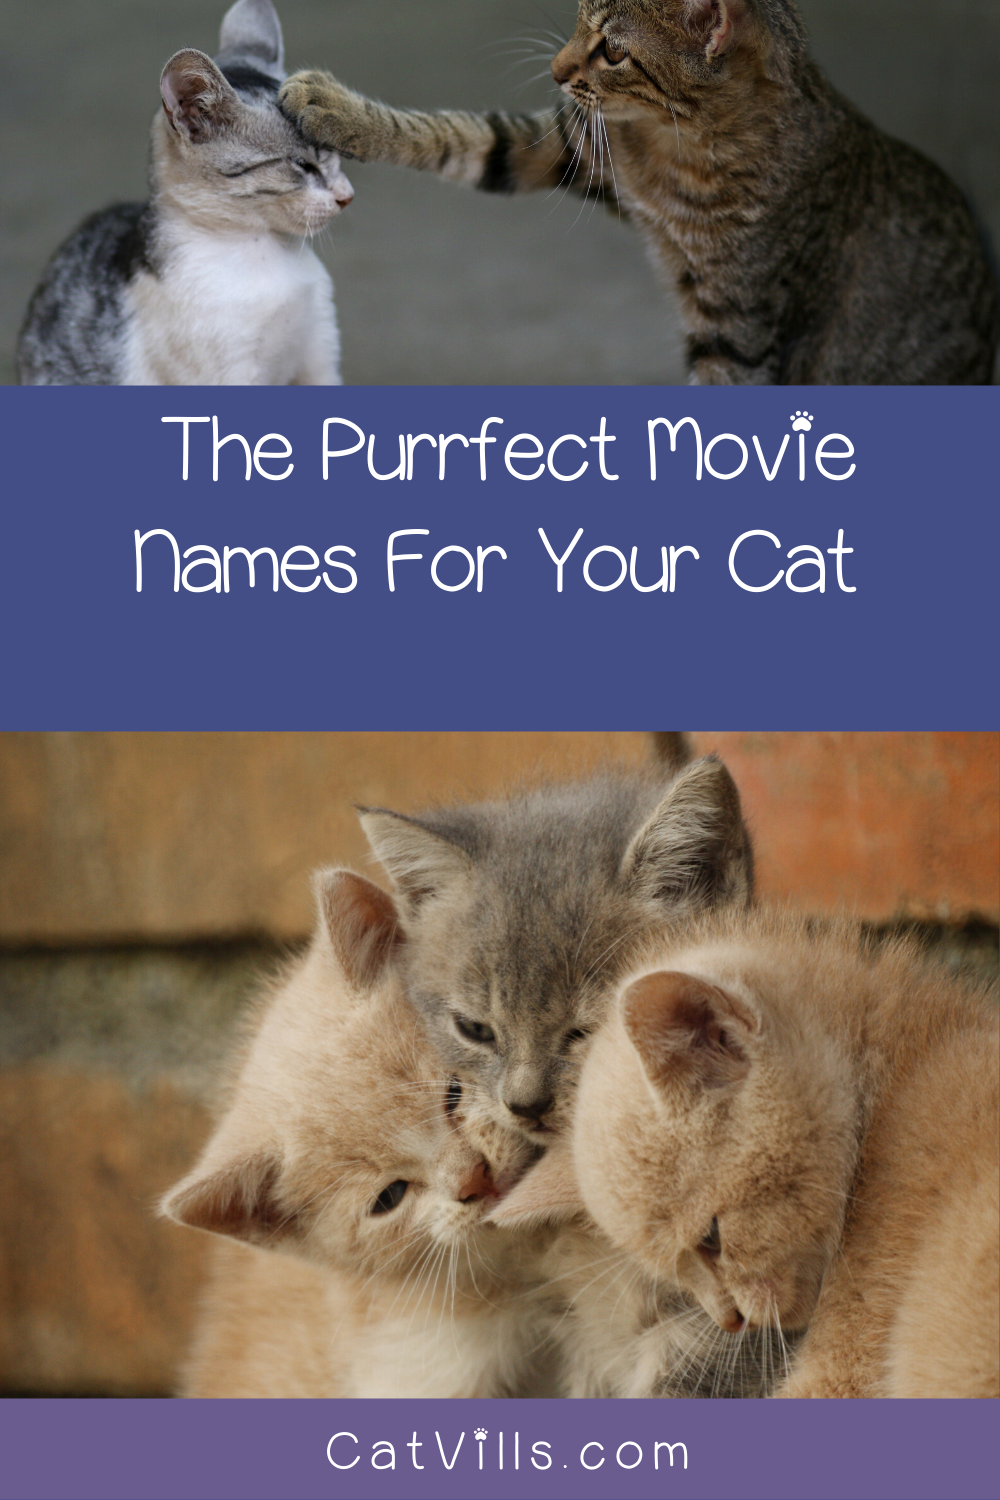 20 Sweet Cat Names from Movies to Inspire You in 2020